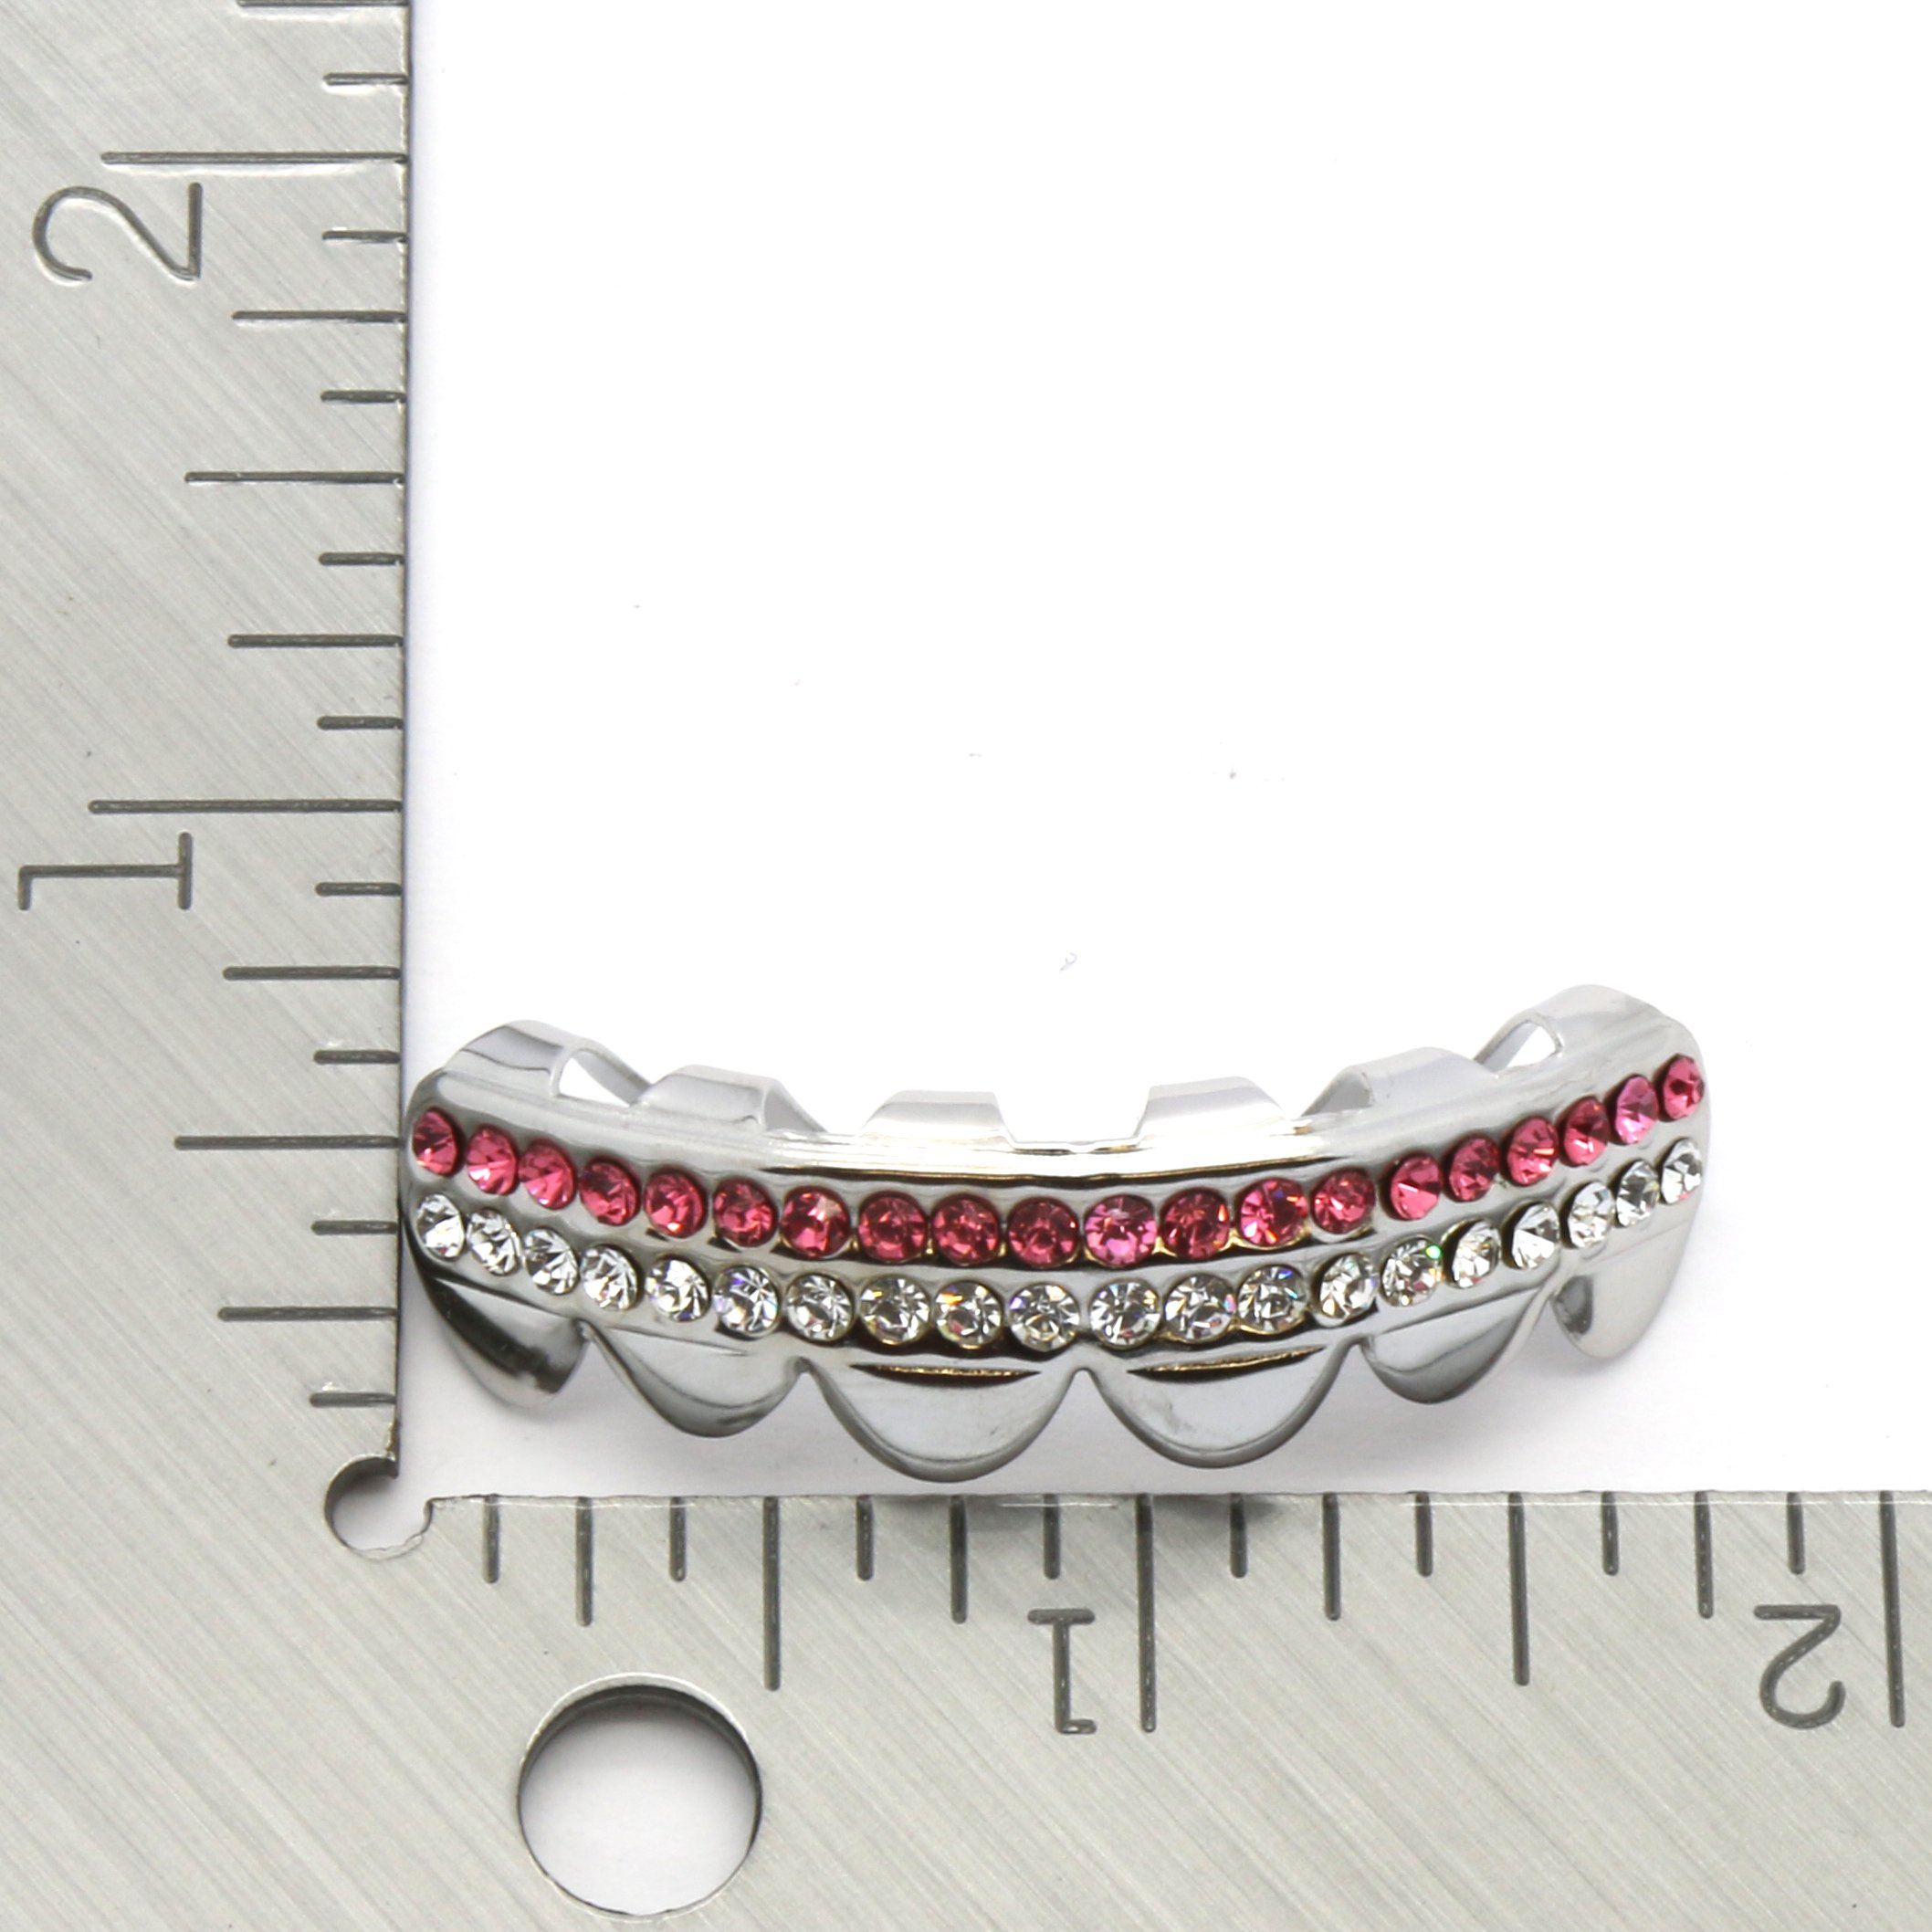 Hip Hop Top Row Platinum Silver Tone 2 Bling Rows Removeable Mouth Grillz Top Pink Lollipop